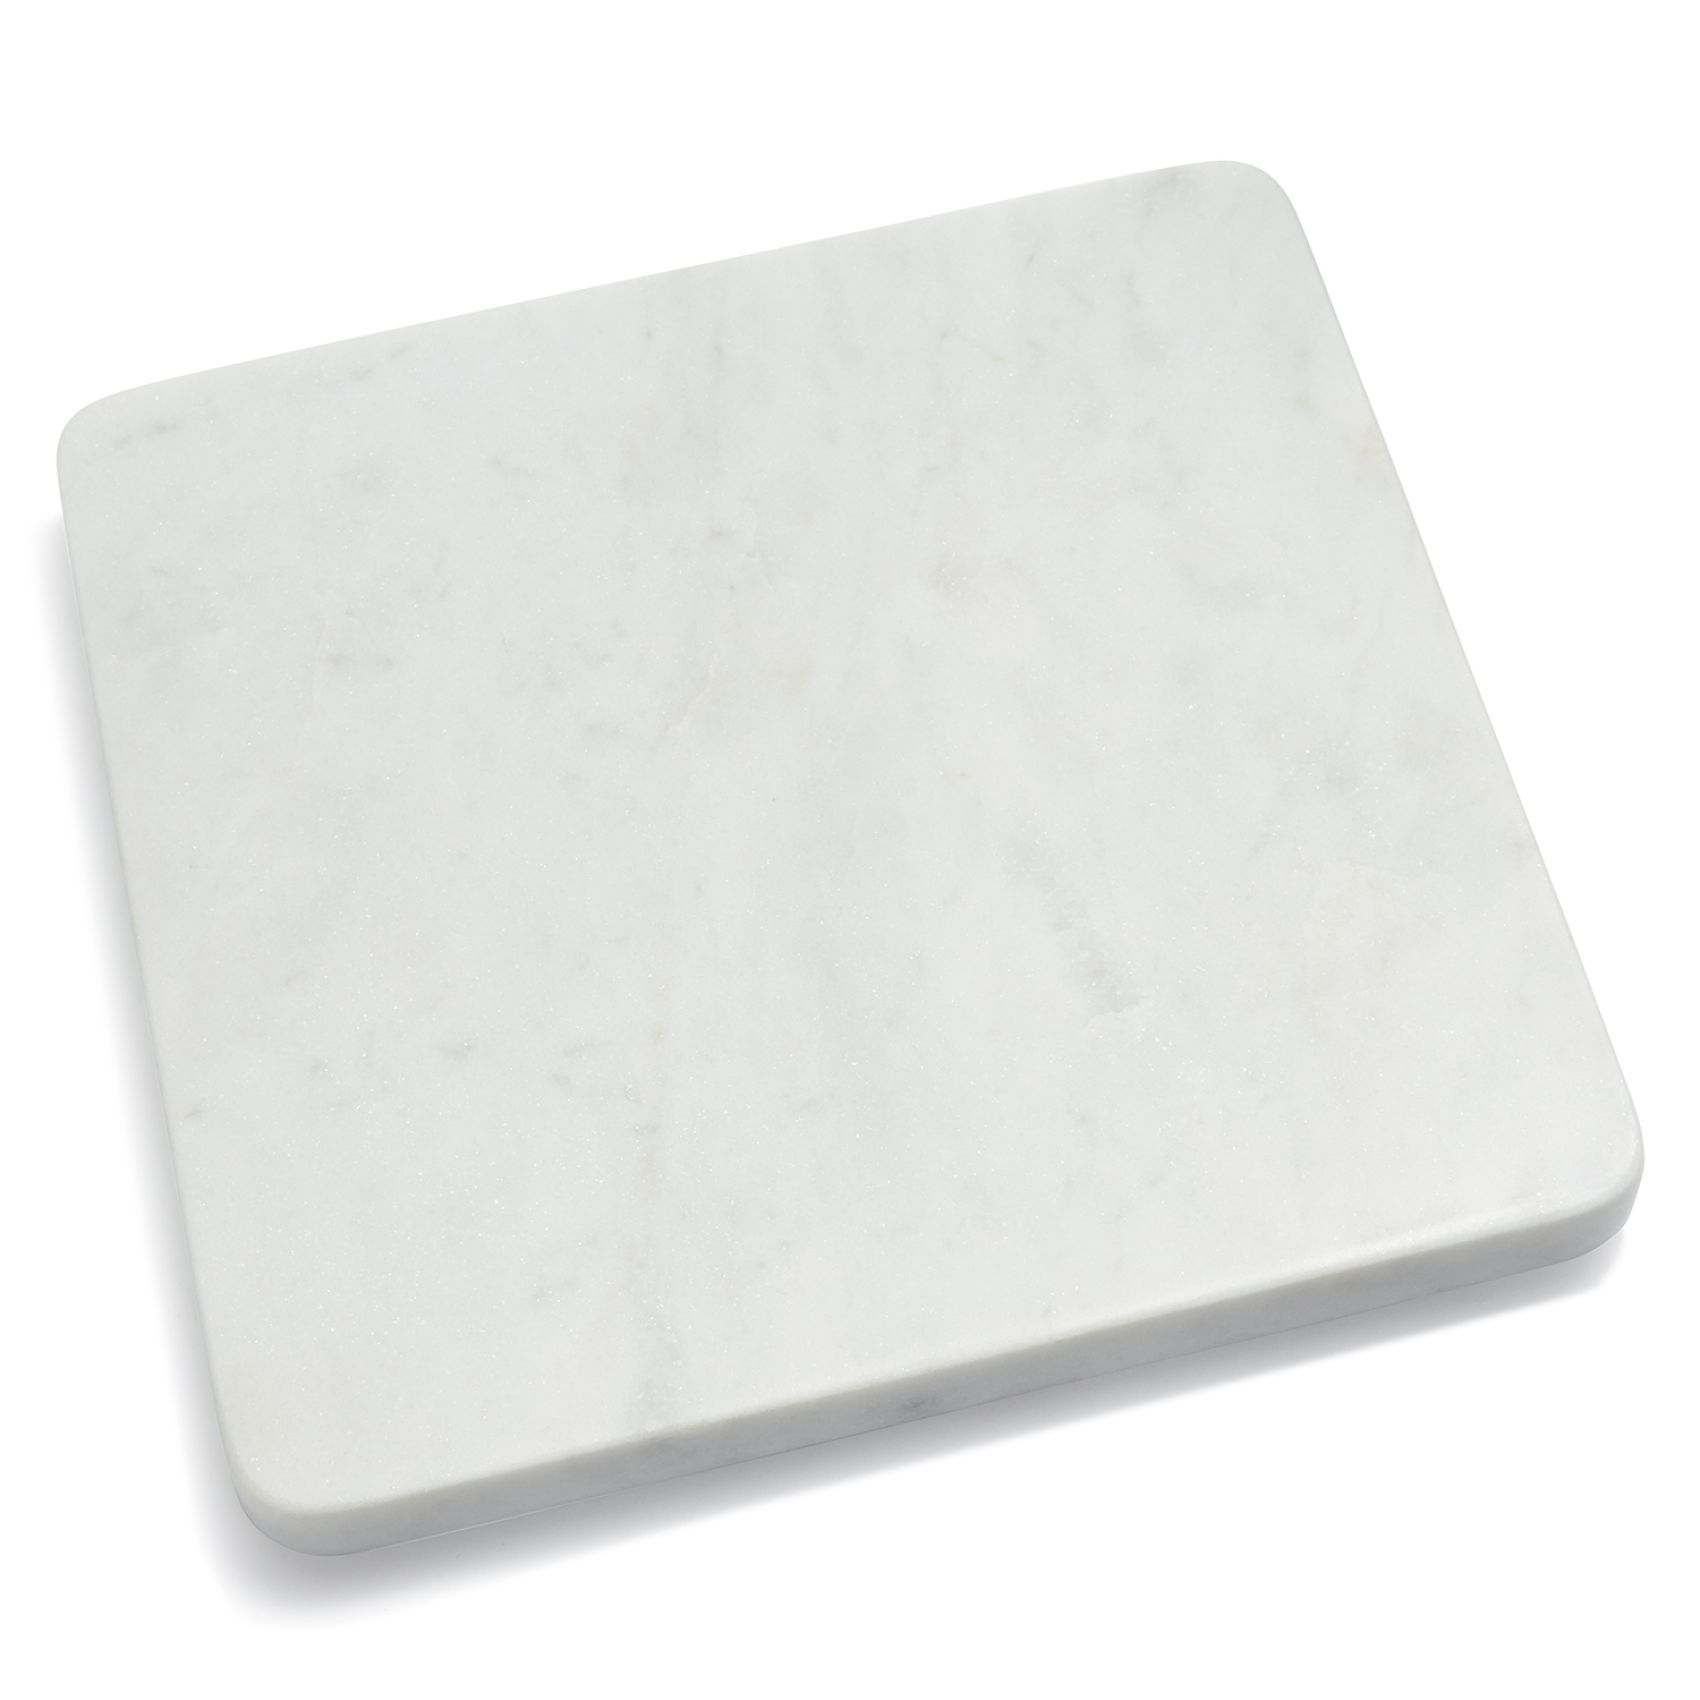 Marble Trivet Sur La Table Marble Serving Boards Sur La Table Marble Cheese Board